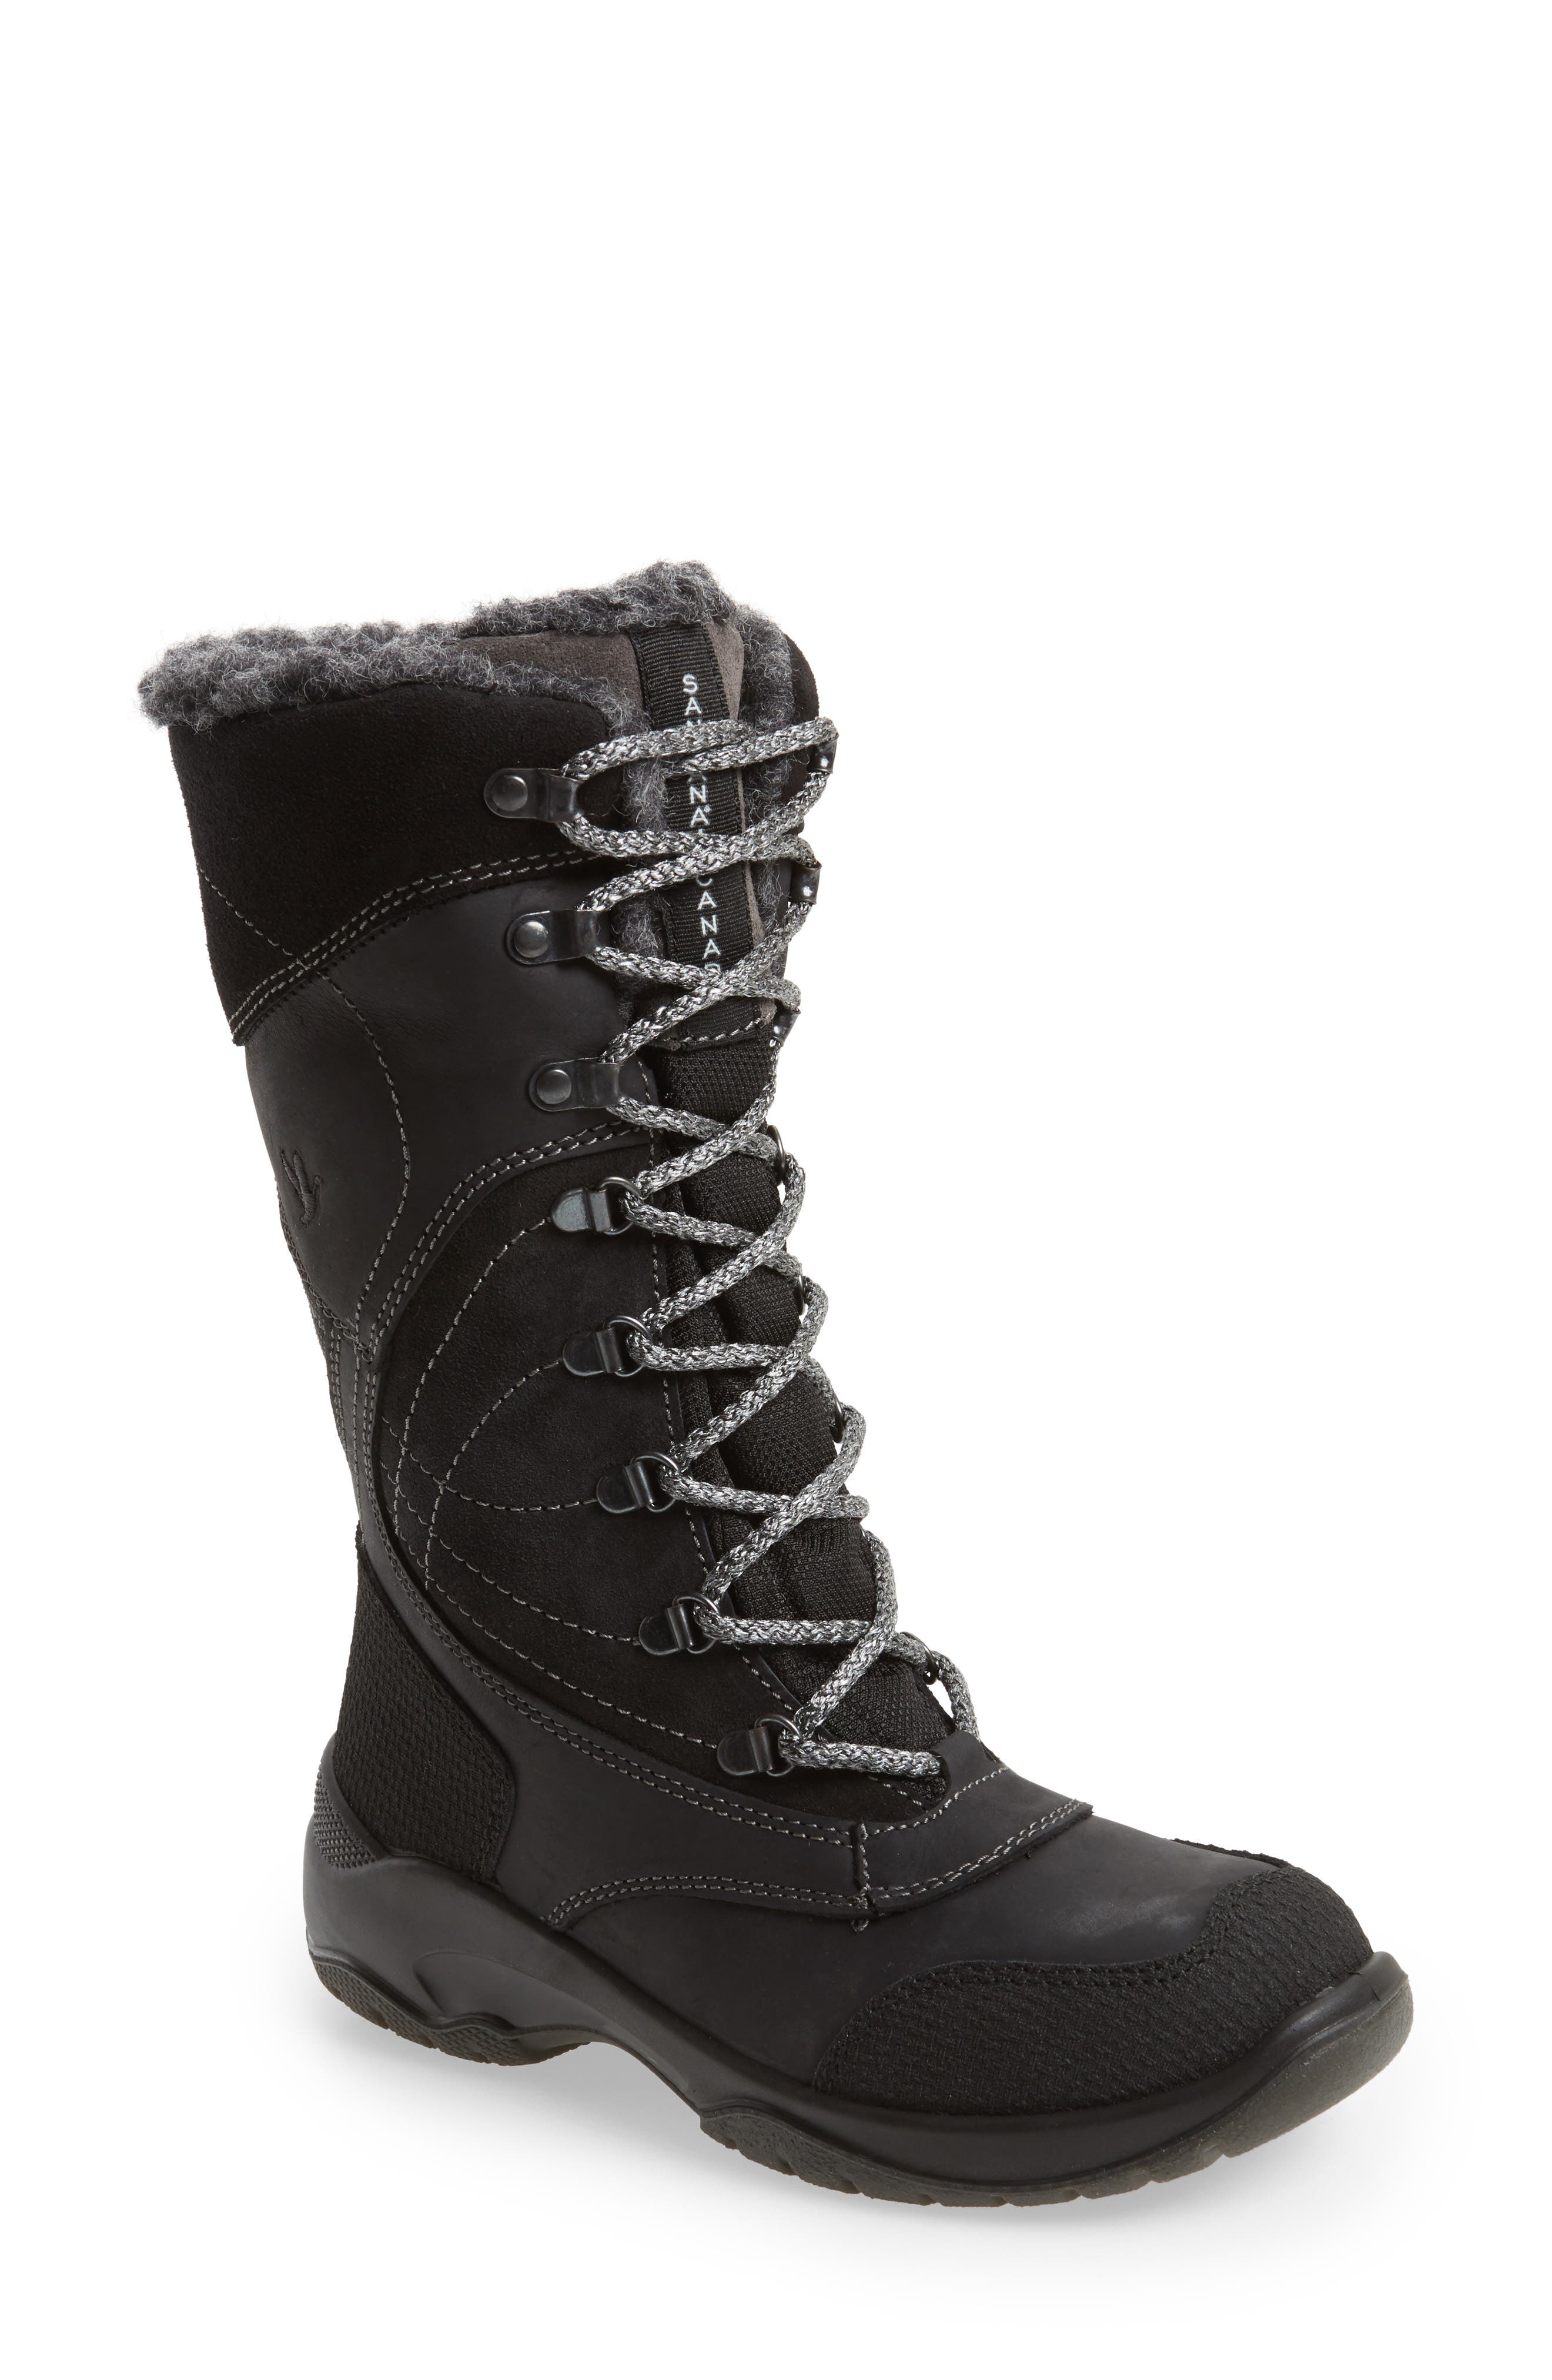 Alternate Image 1 Selected - Santana Canada Topspeed Faux Fur Lined Waterproof Boot (Women)